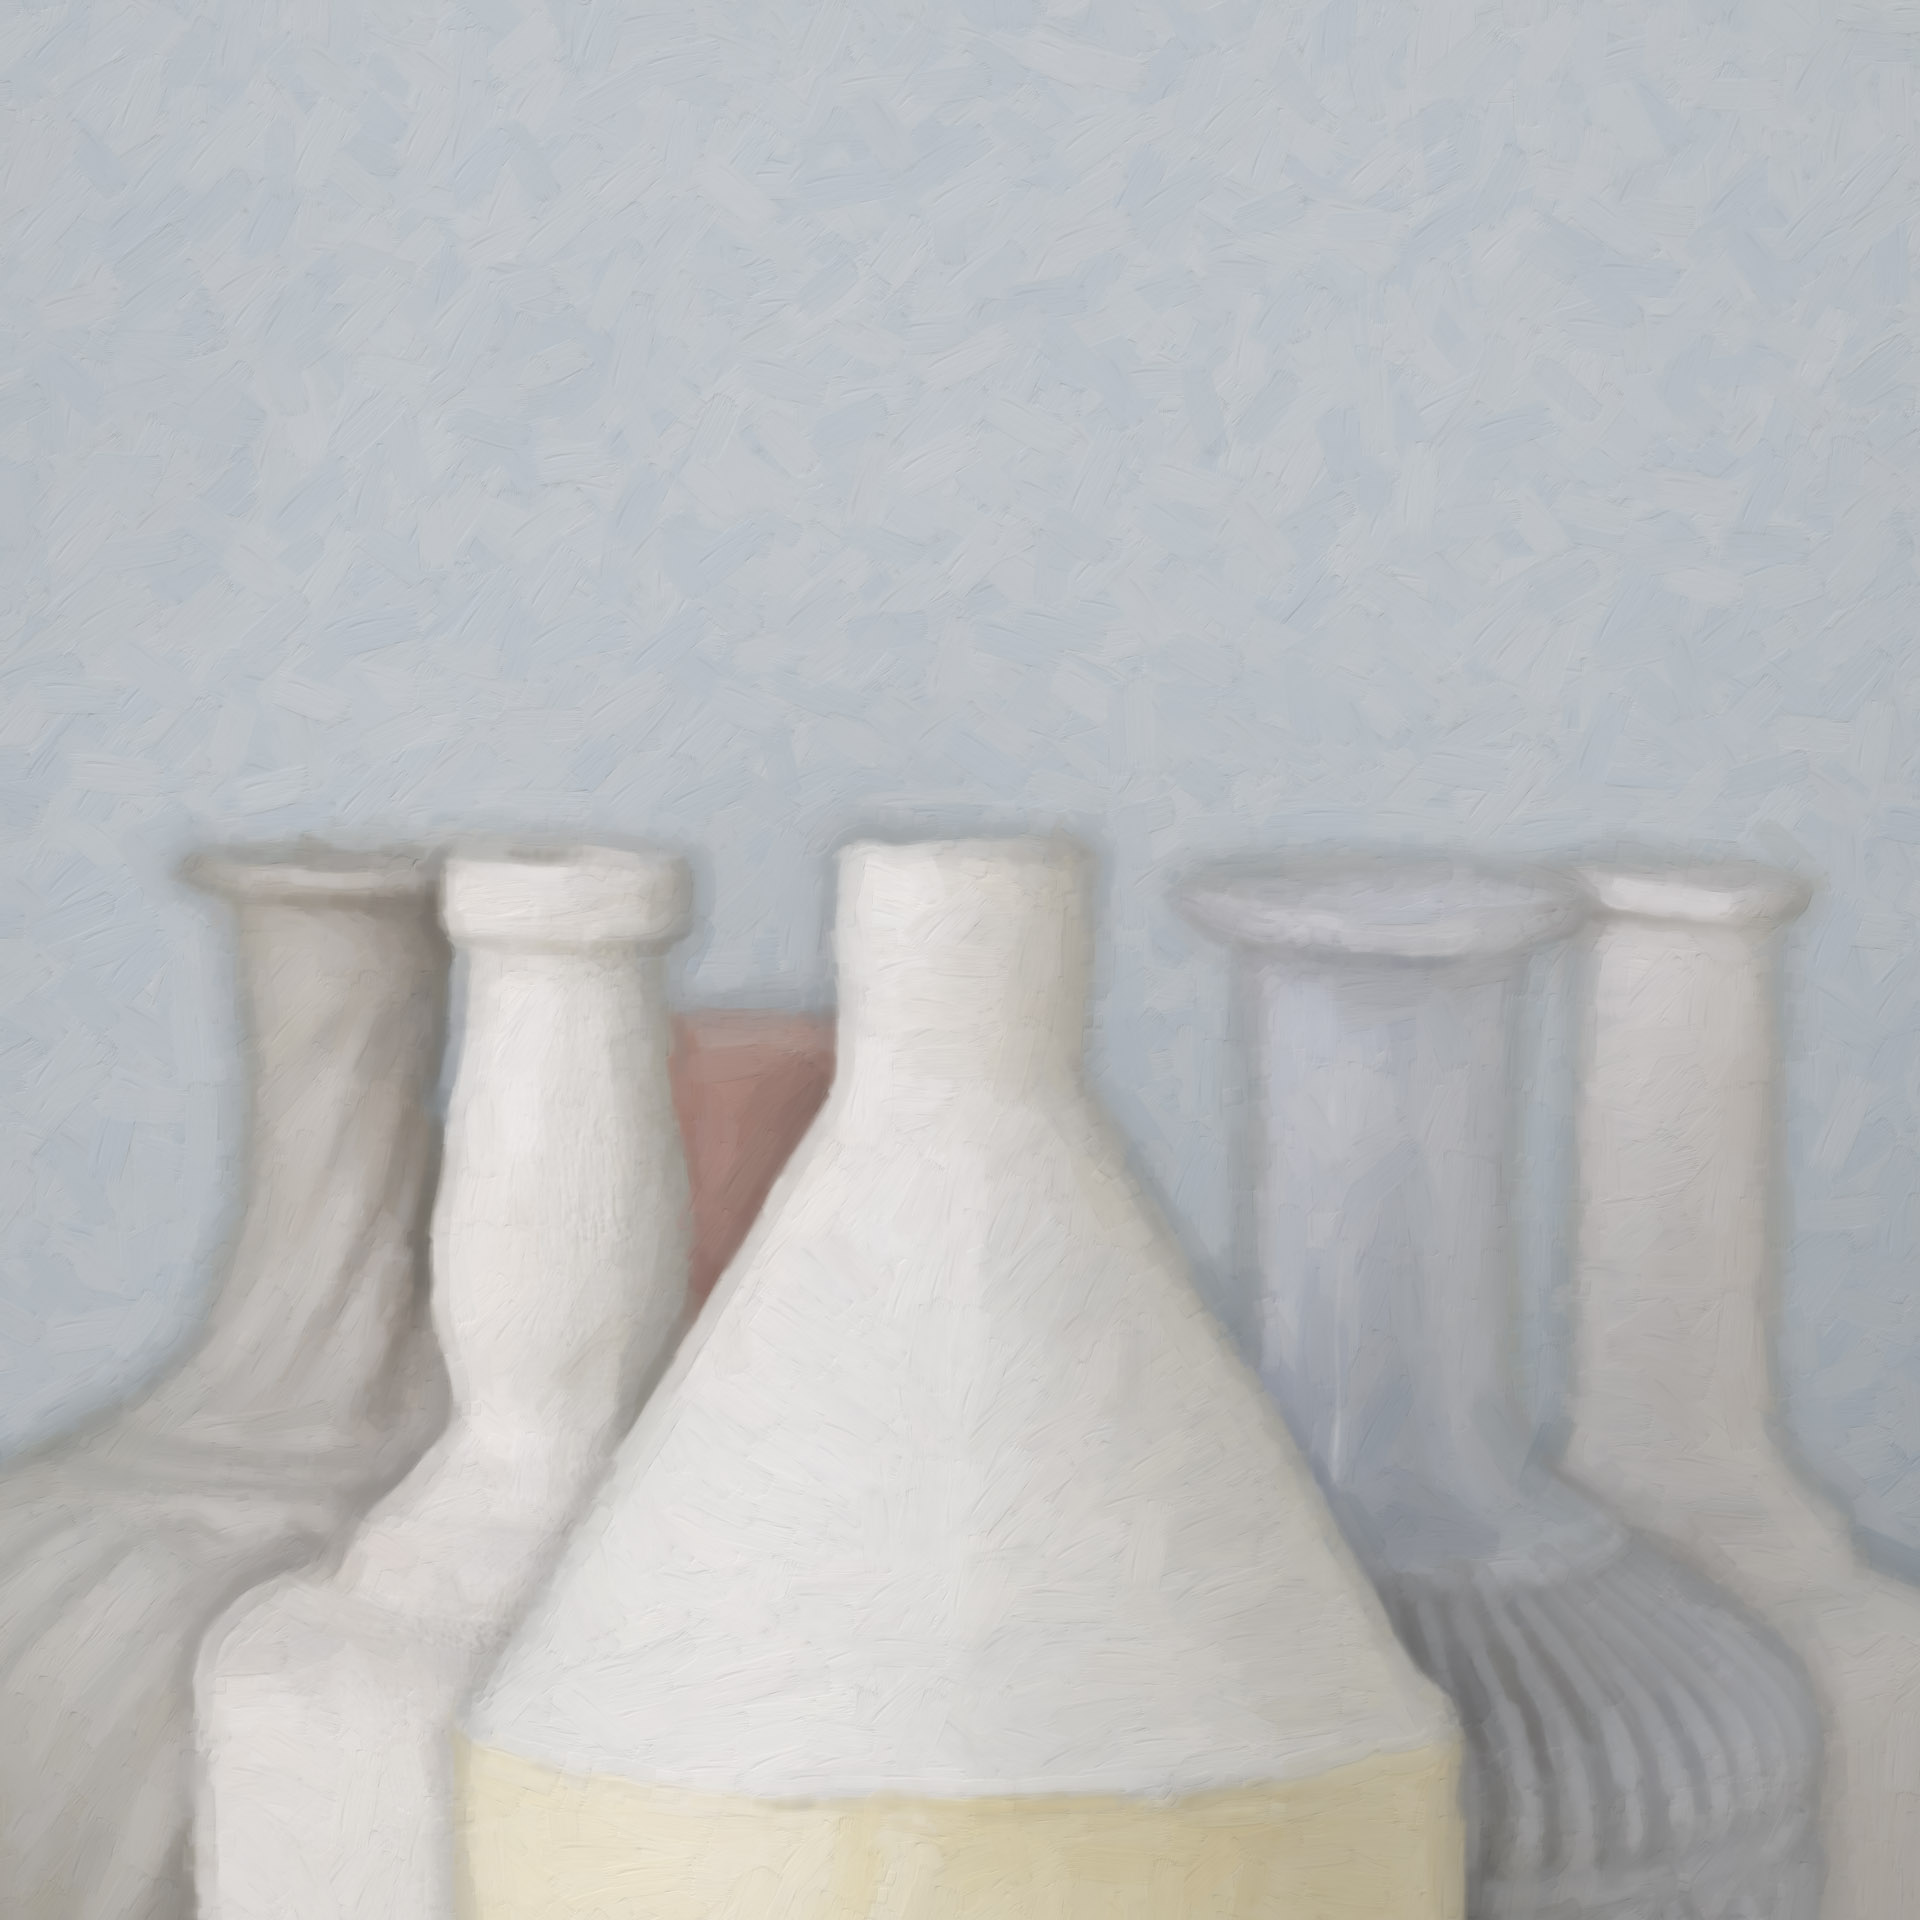 Morandi on the edge 3